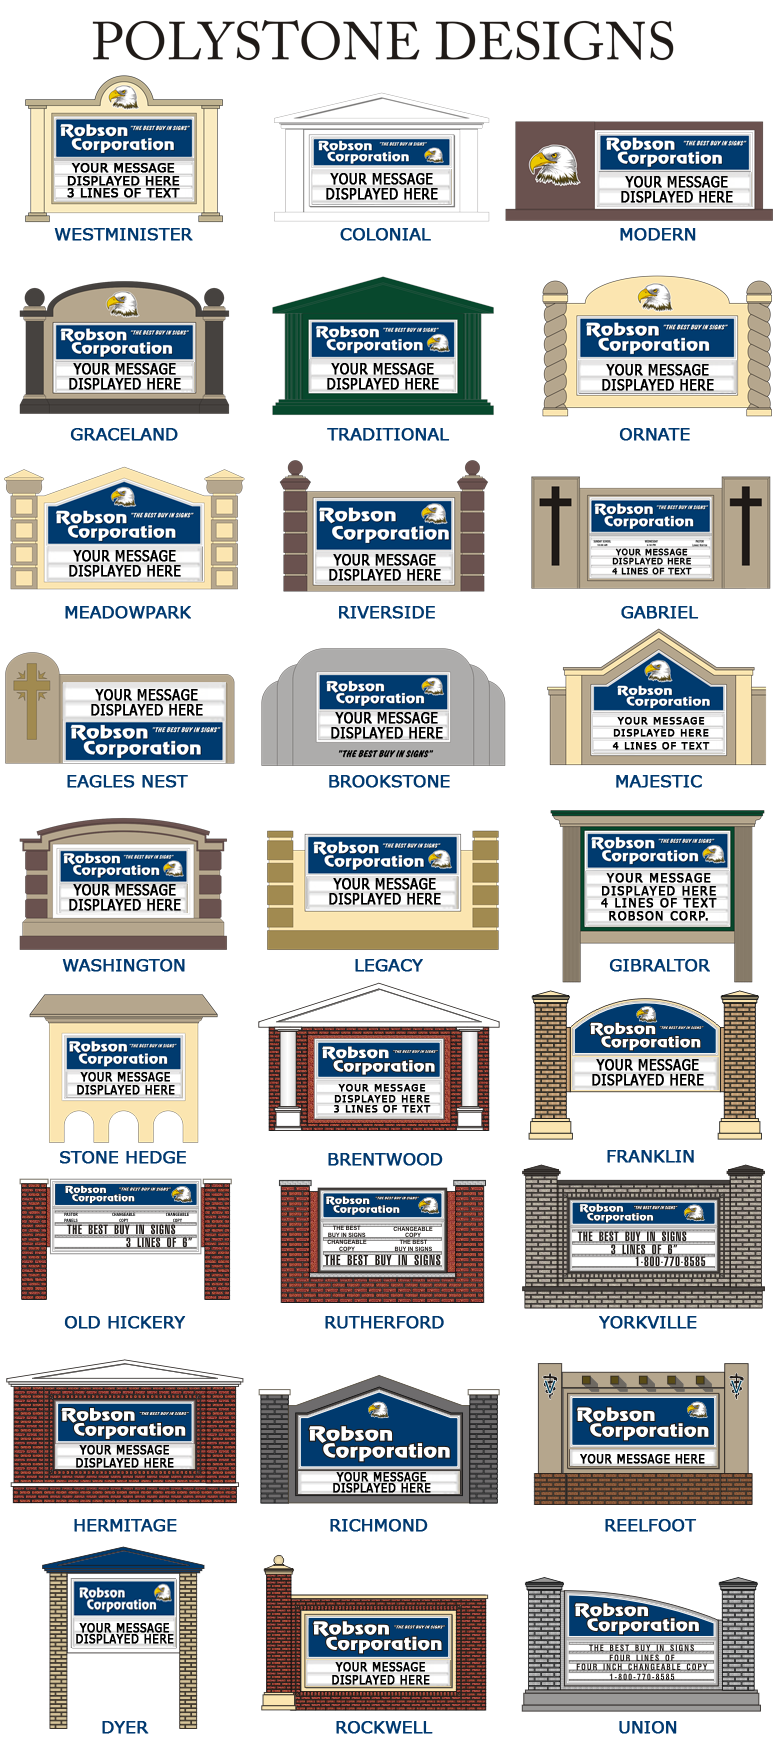 Church Signs, School Marquee Signs, university Digital Signs, LED Signs